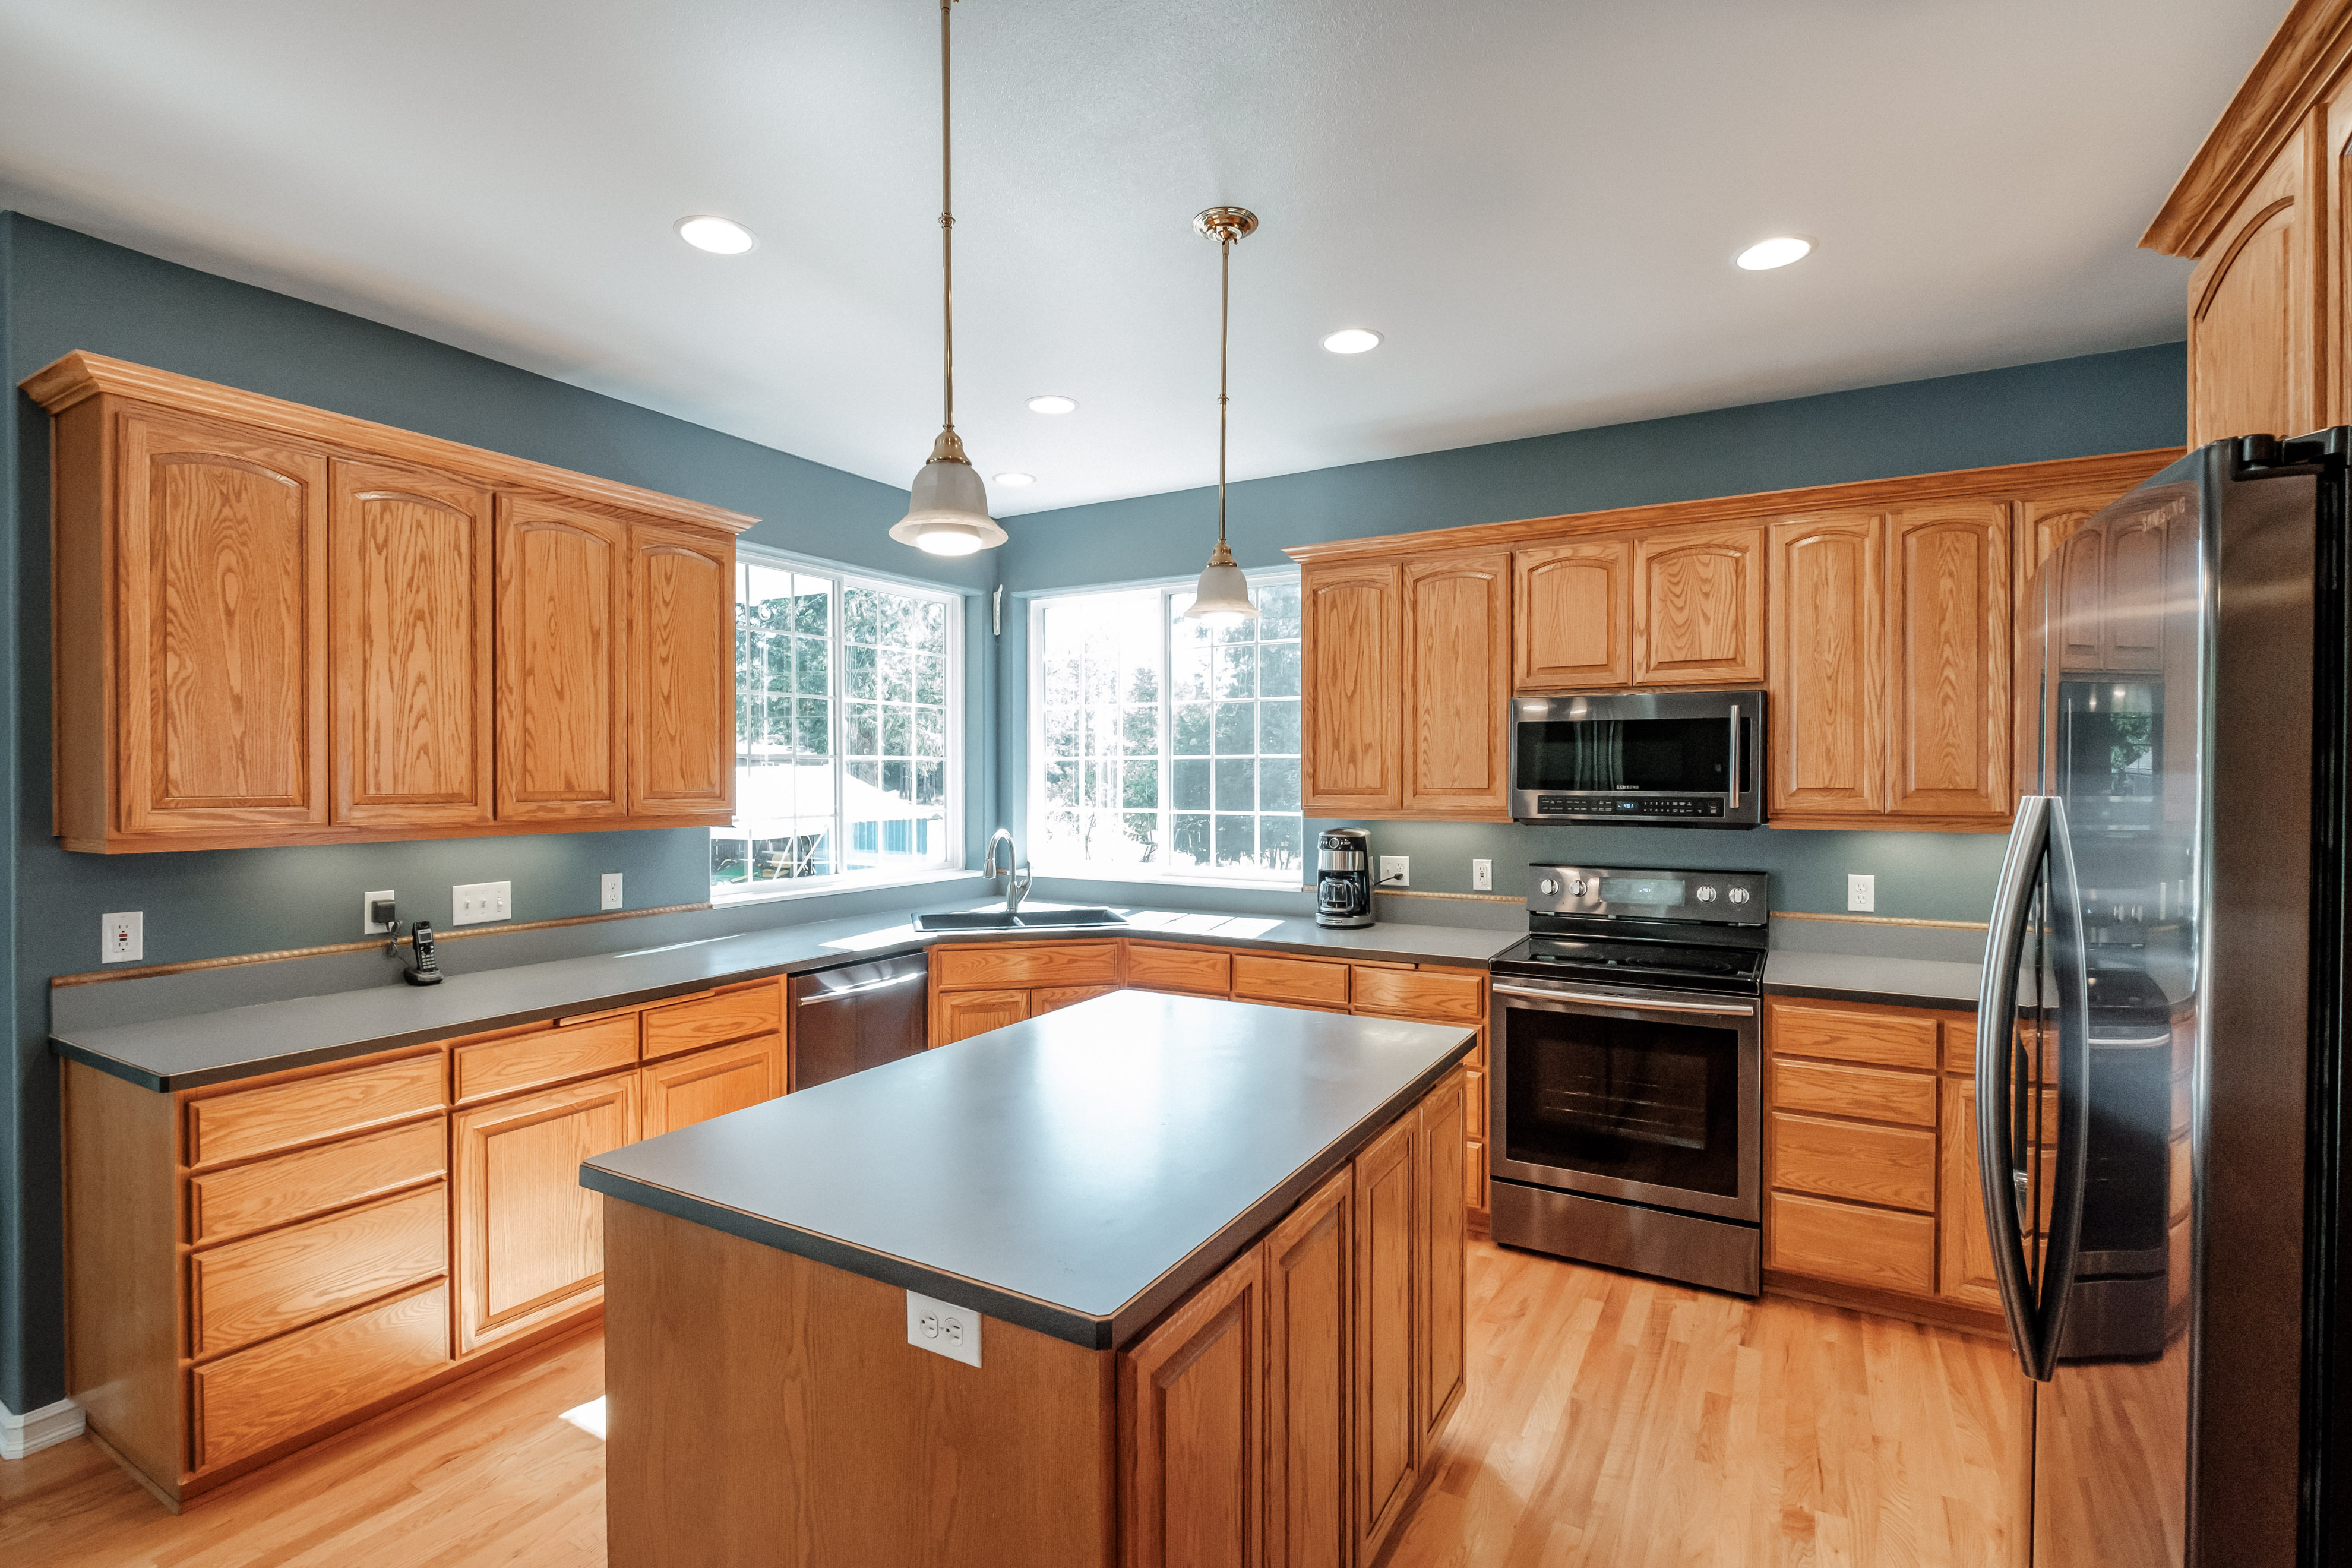 Home for Sale on Old Holley Road